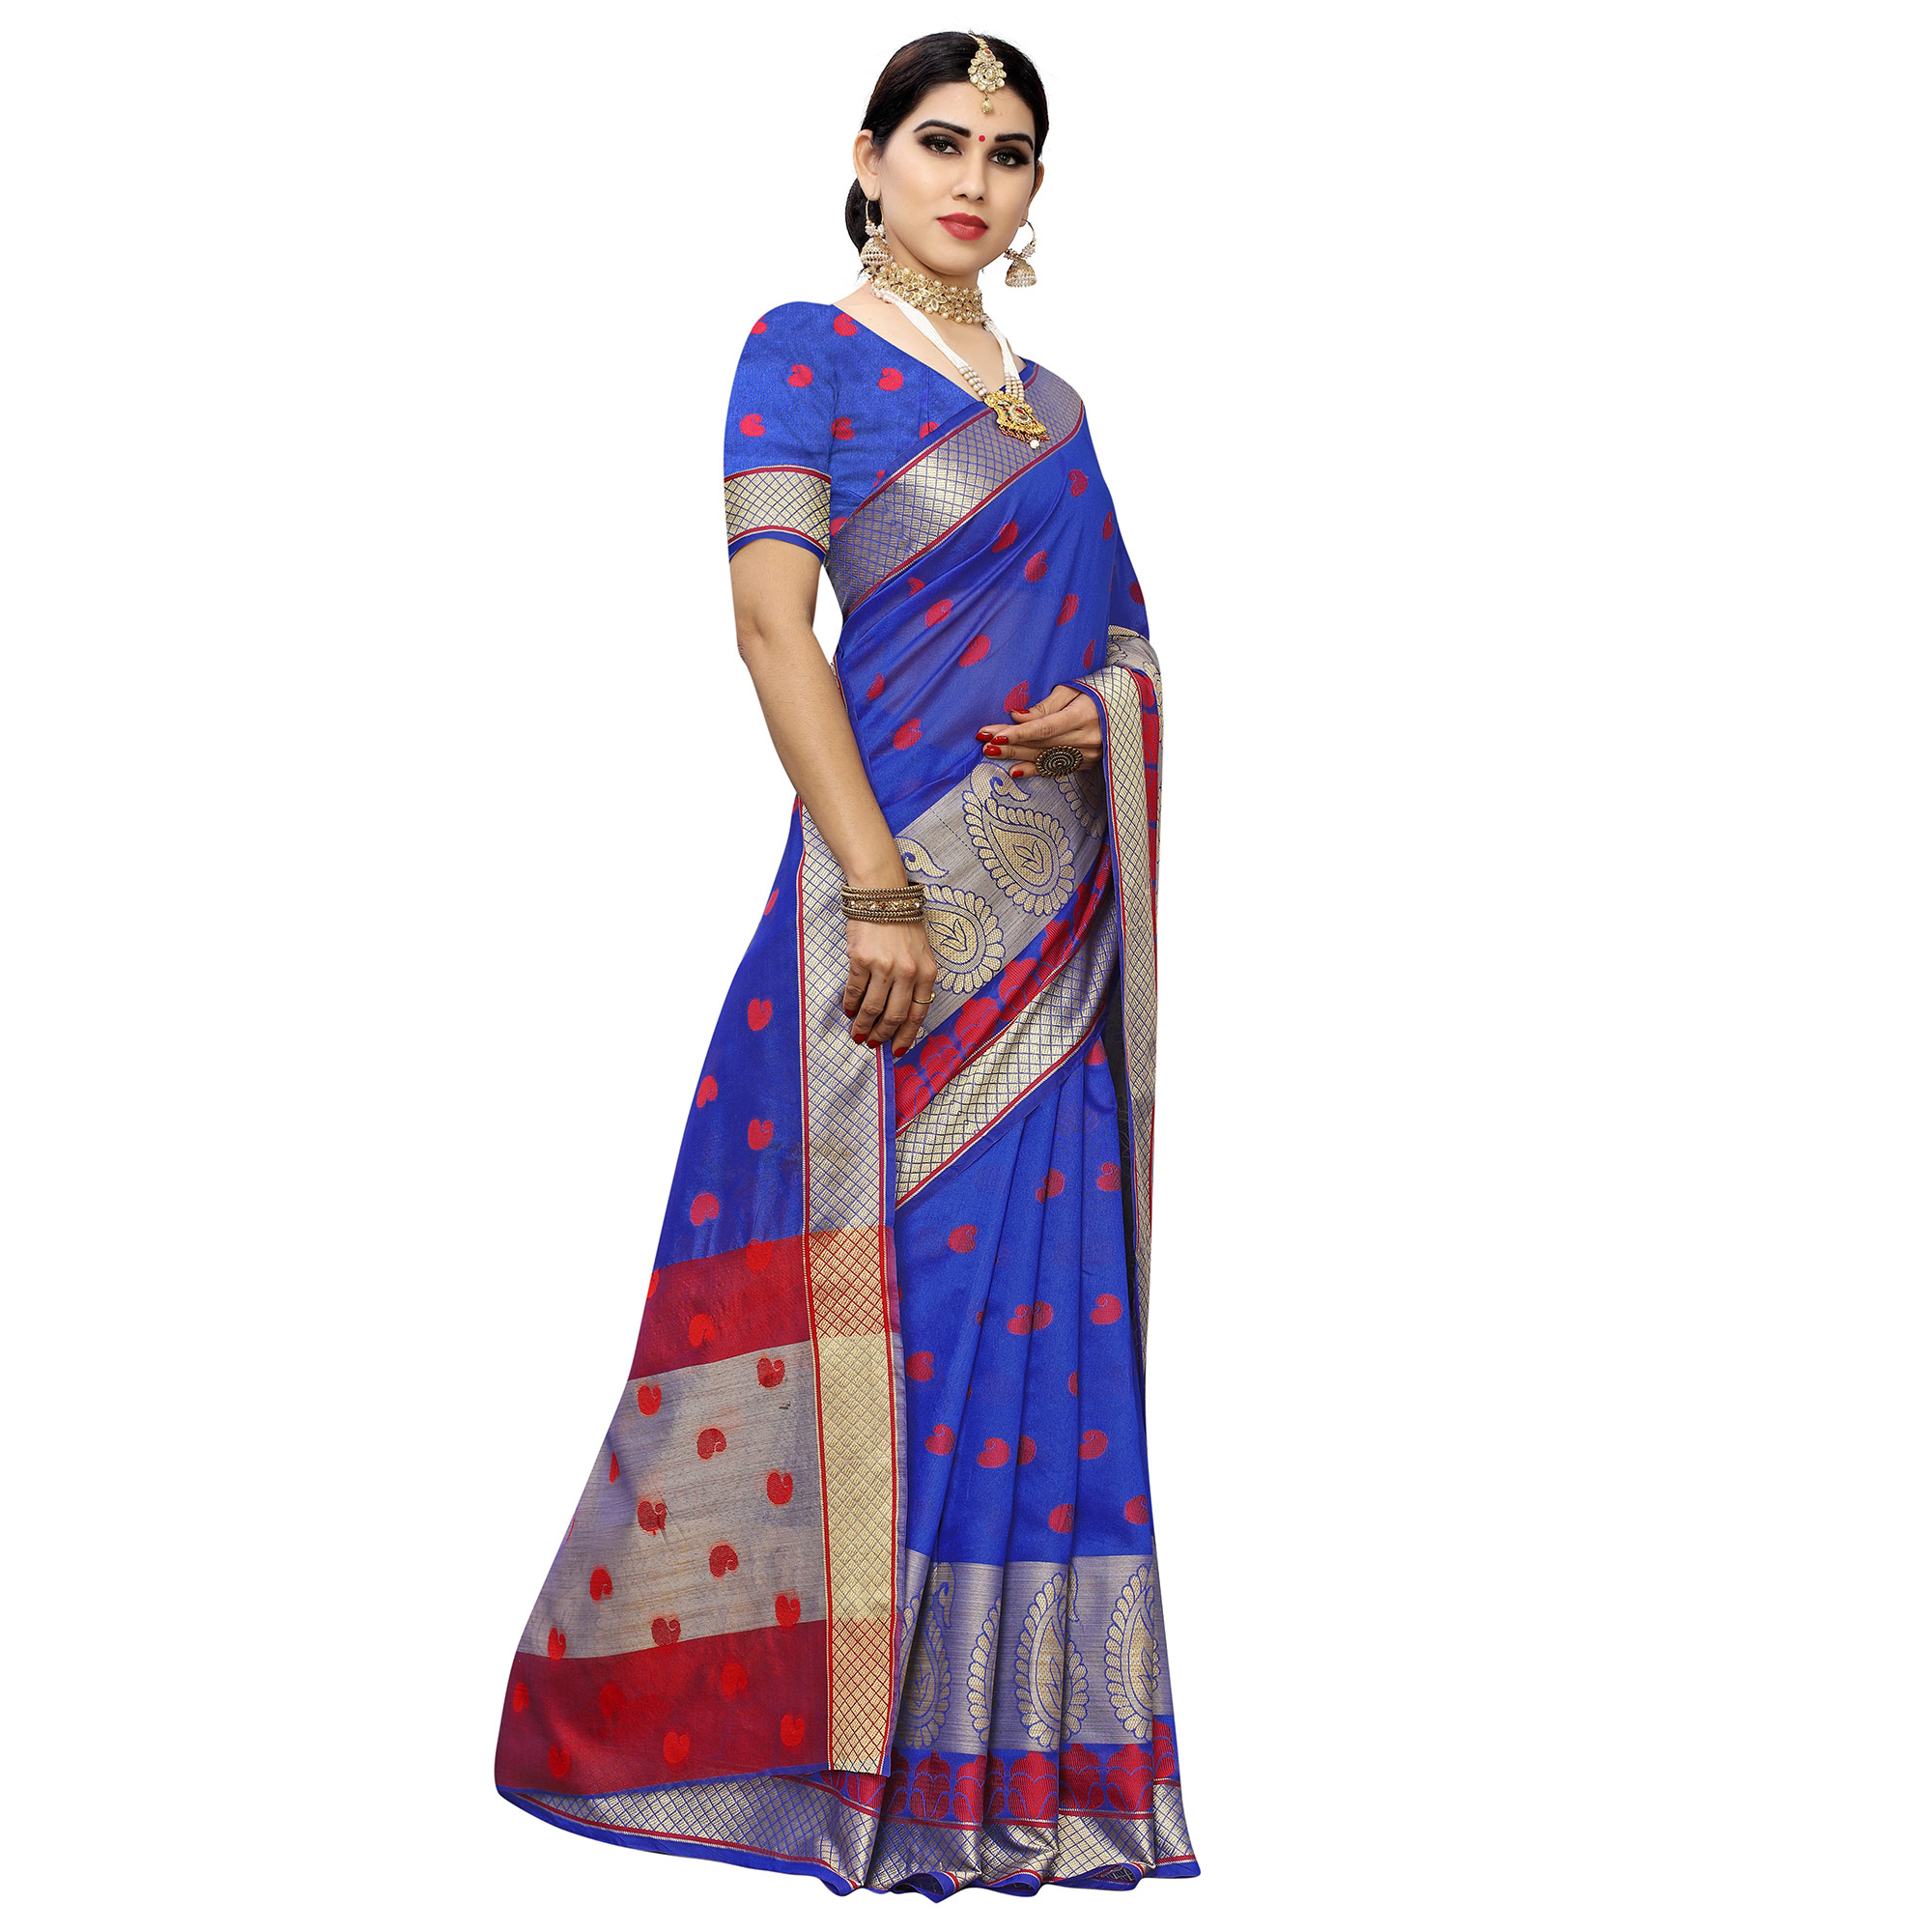 Delightful Blue Colored Festive Wear Woven Cotton Silk Saree